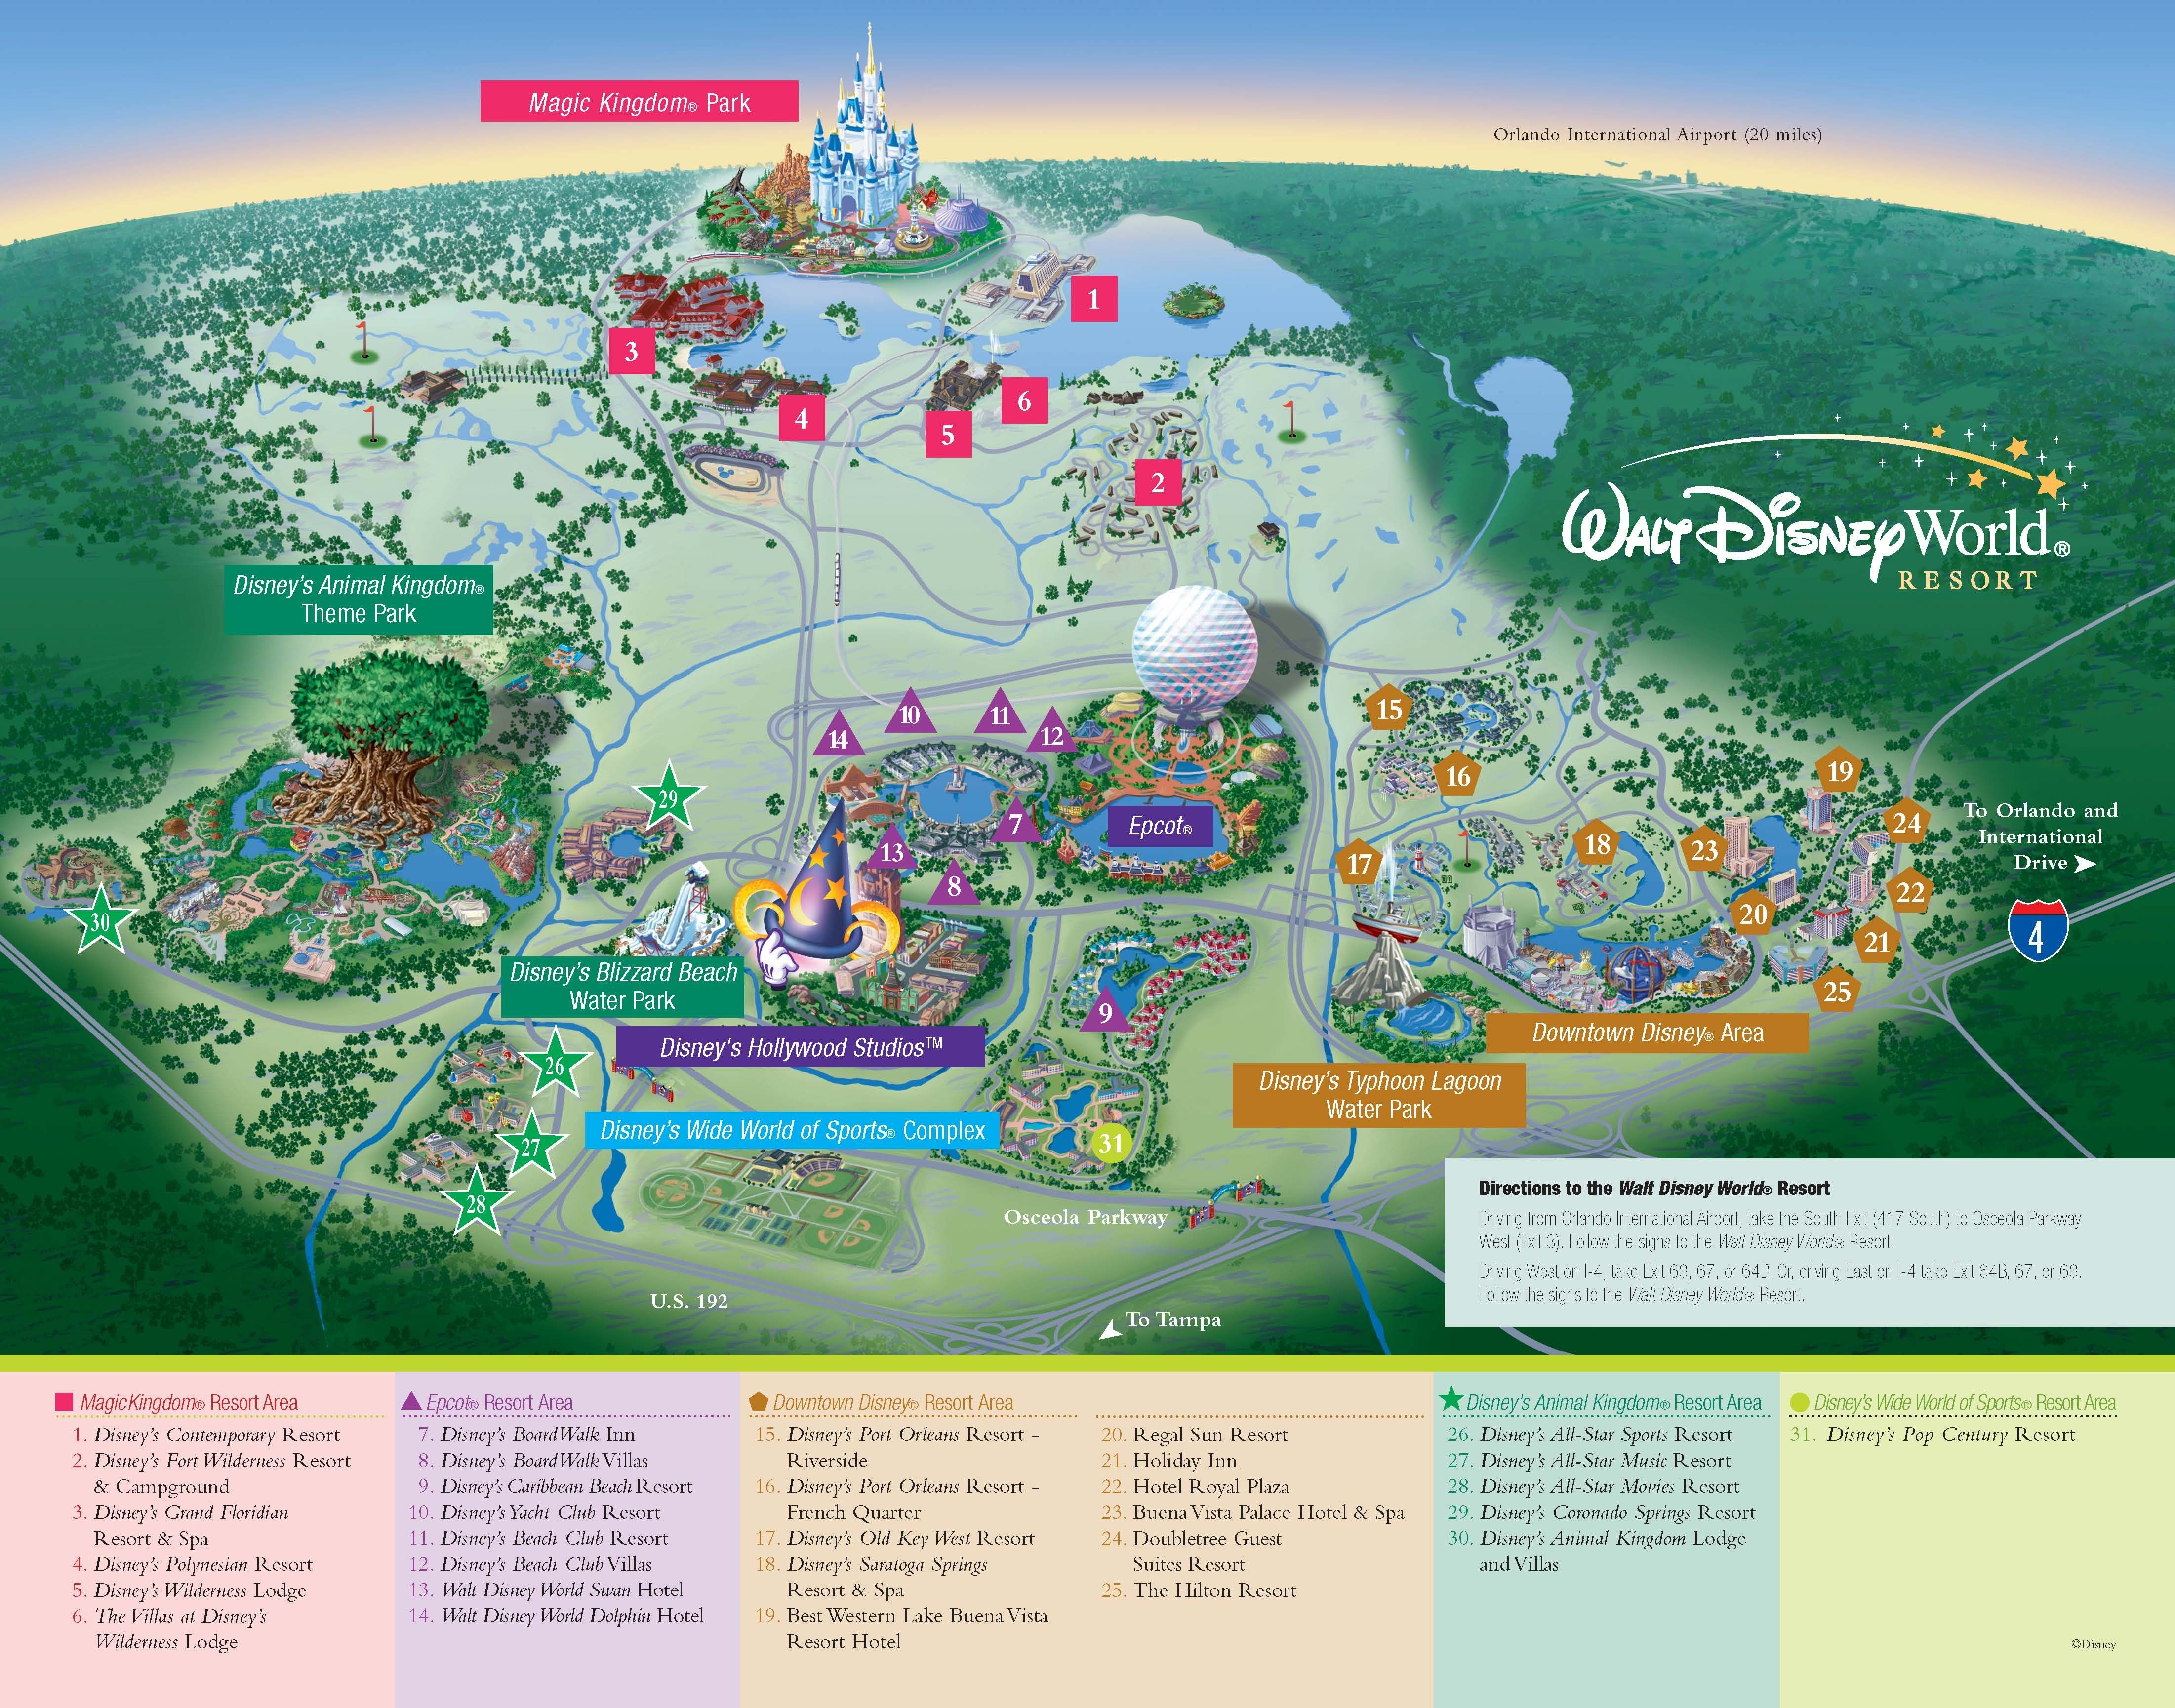 Disney World Map Pdf Cool Walt Disney World Map Pdf 0 | Everything Disney in 2019